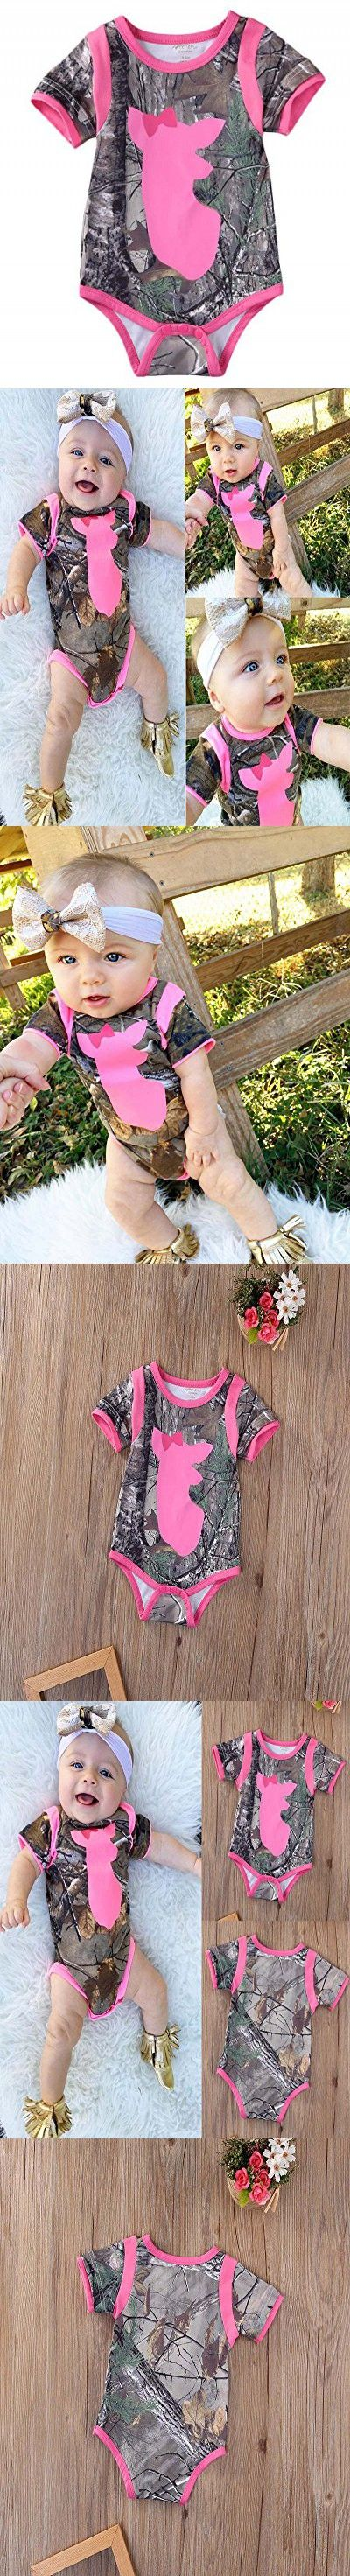 Newborn Infant Baby Girls Boys Clothes Deer Romper Jumpsuit Playsuit Outfit (3~6 month)